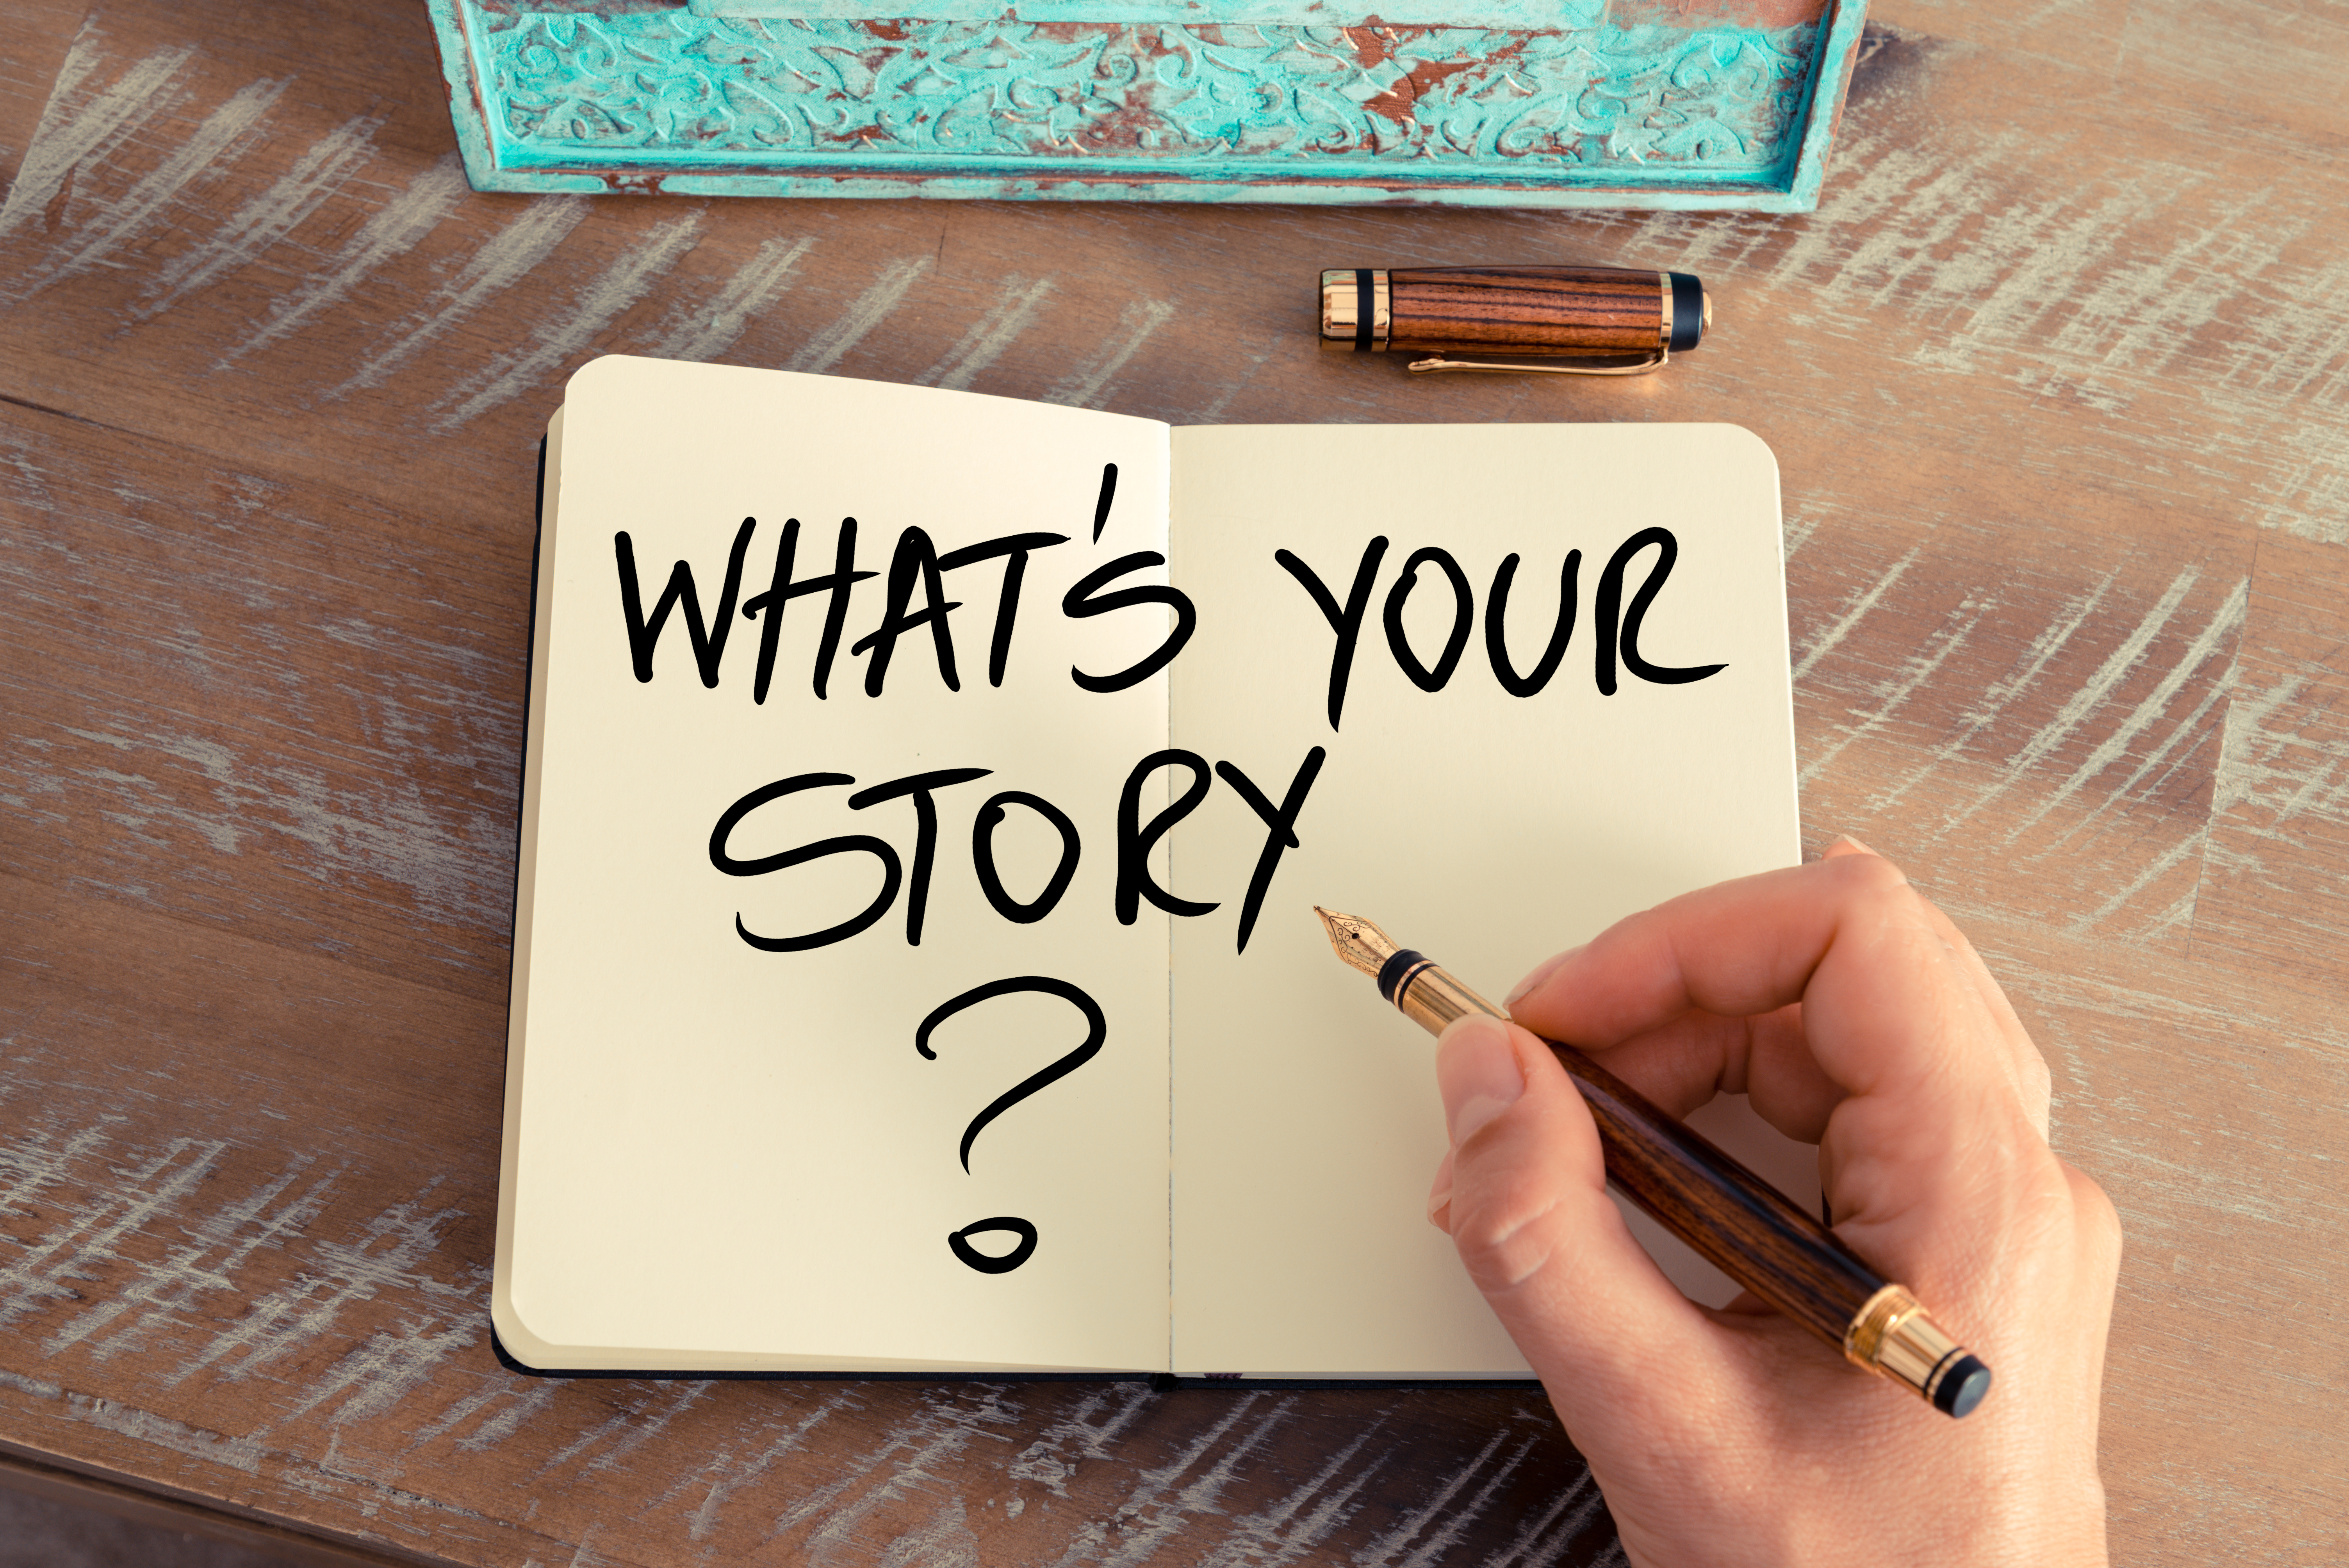 Copy writing for westchester Small businesses